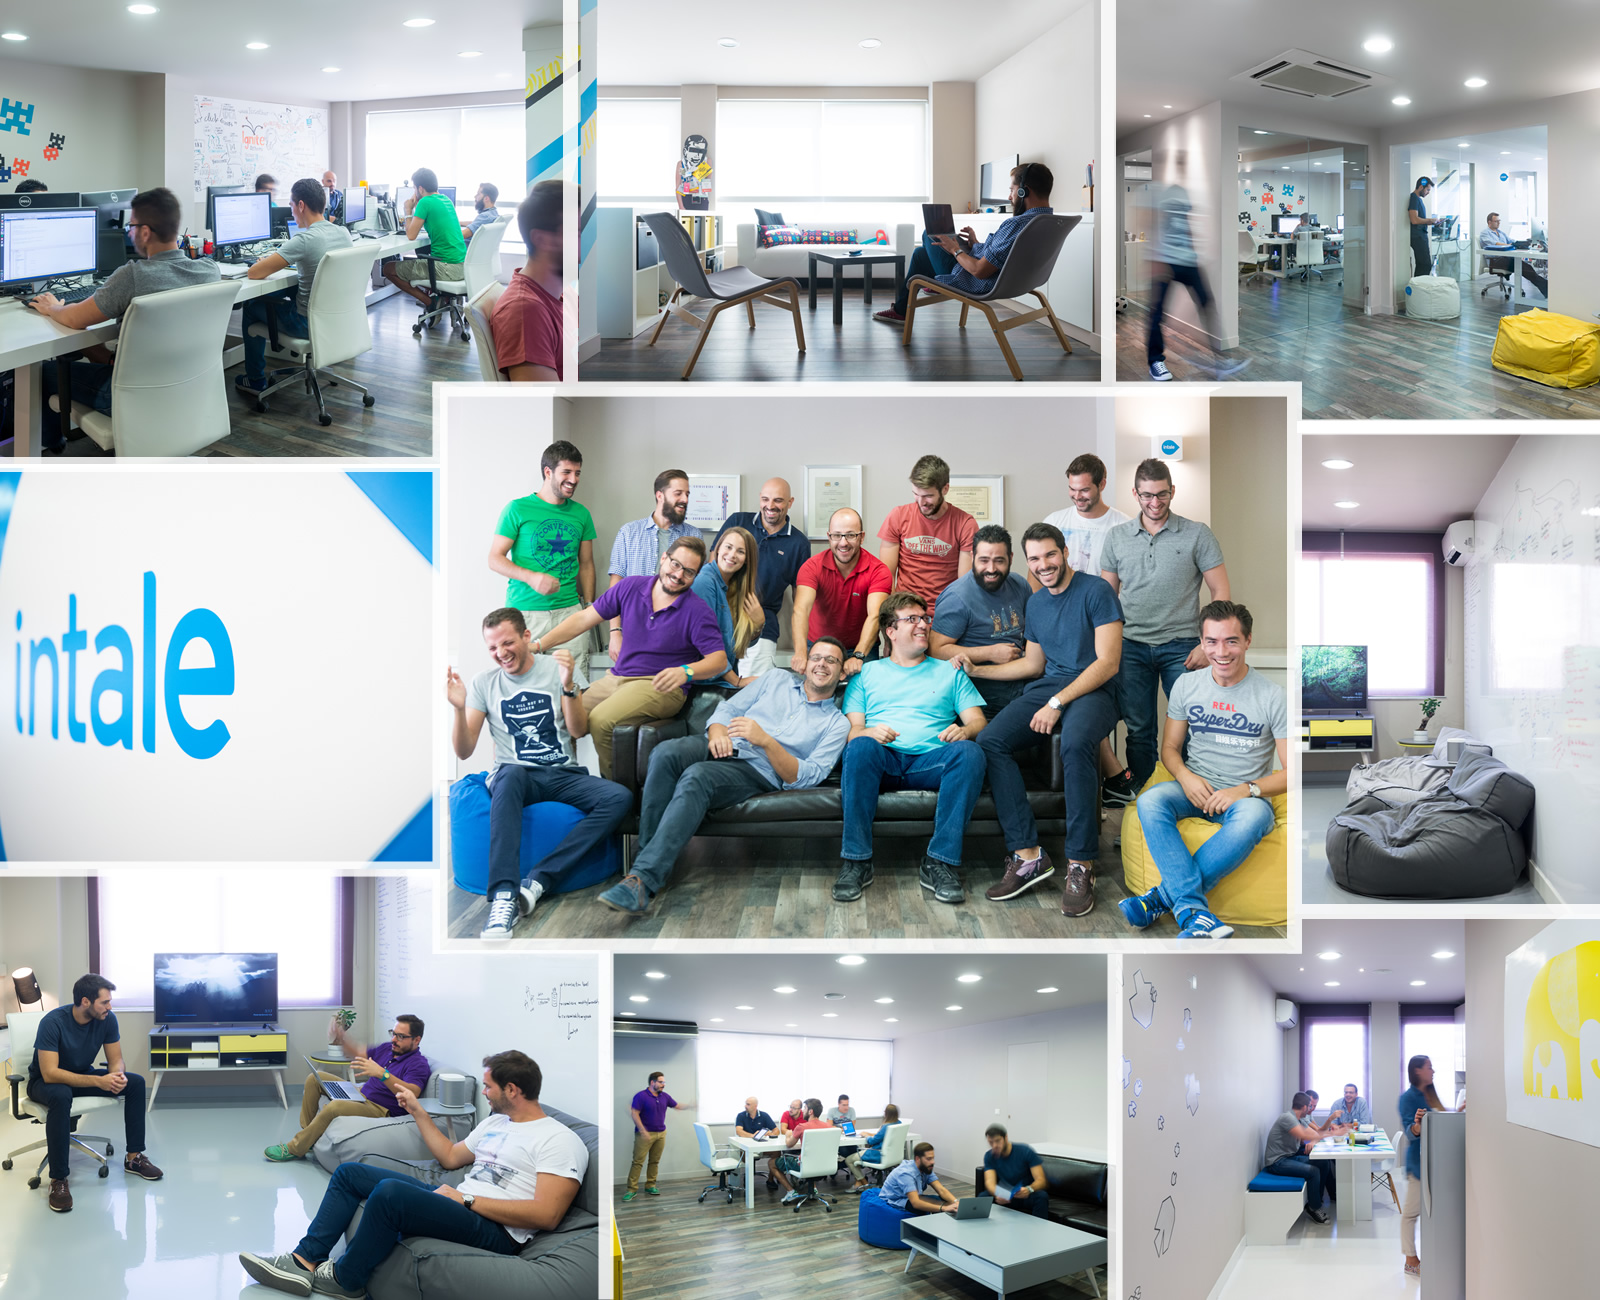 intale jobs we achieve that through our platform that connects stores distributors and retail manufacturers creating a unique transparent marketplace